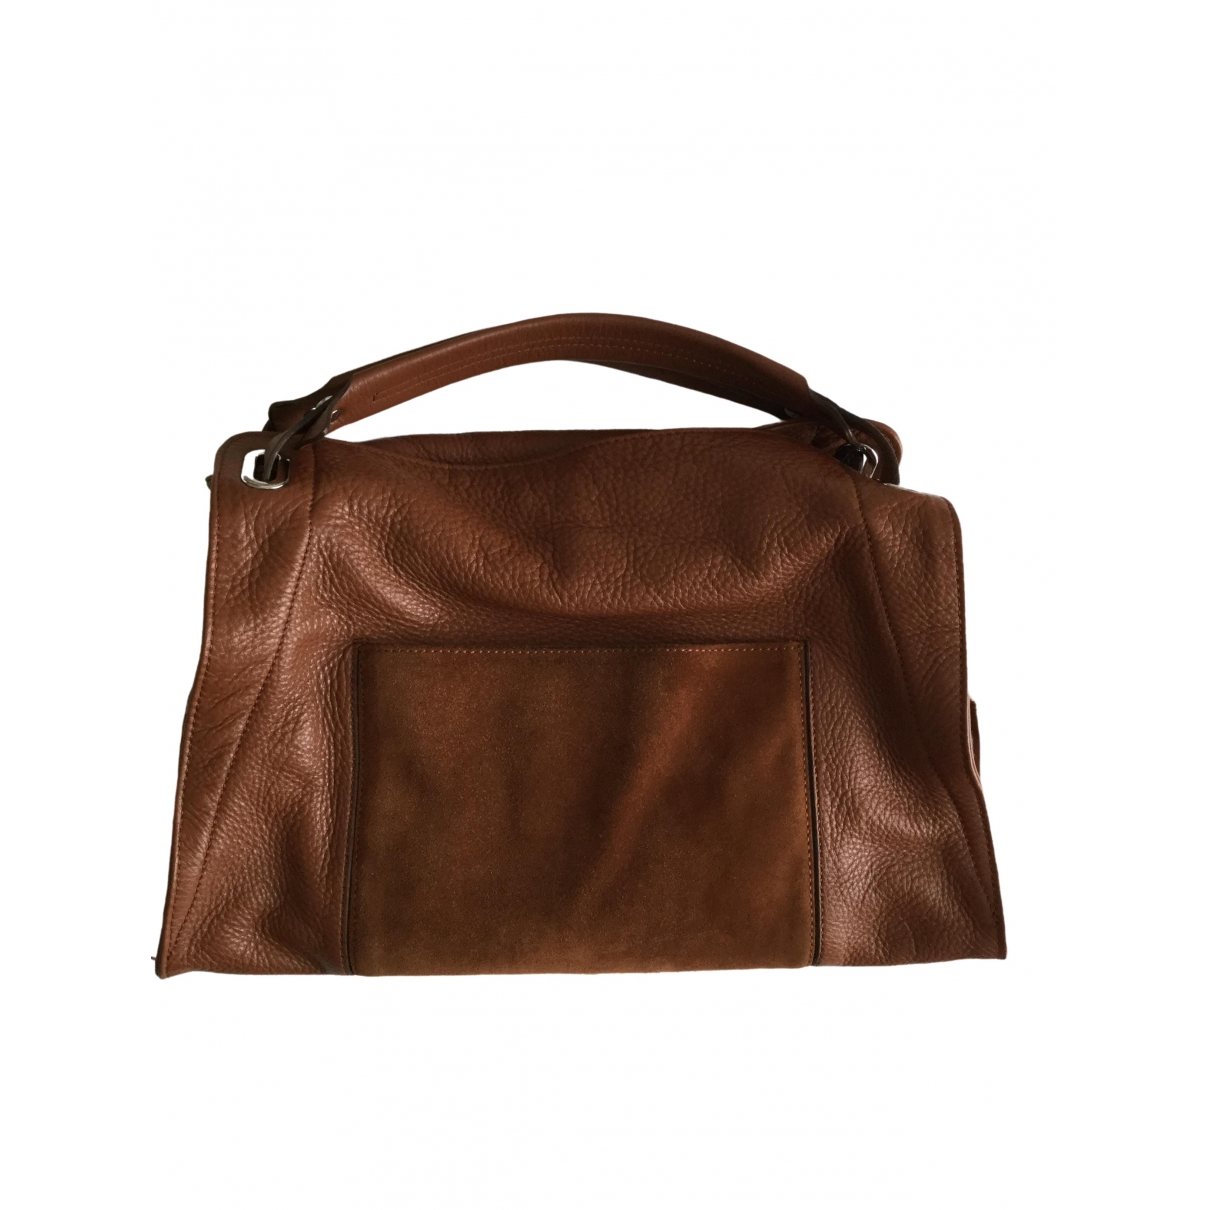 Sandro \N Camel Leather handbag for Women \N